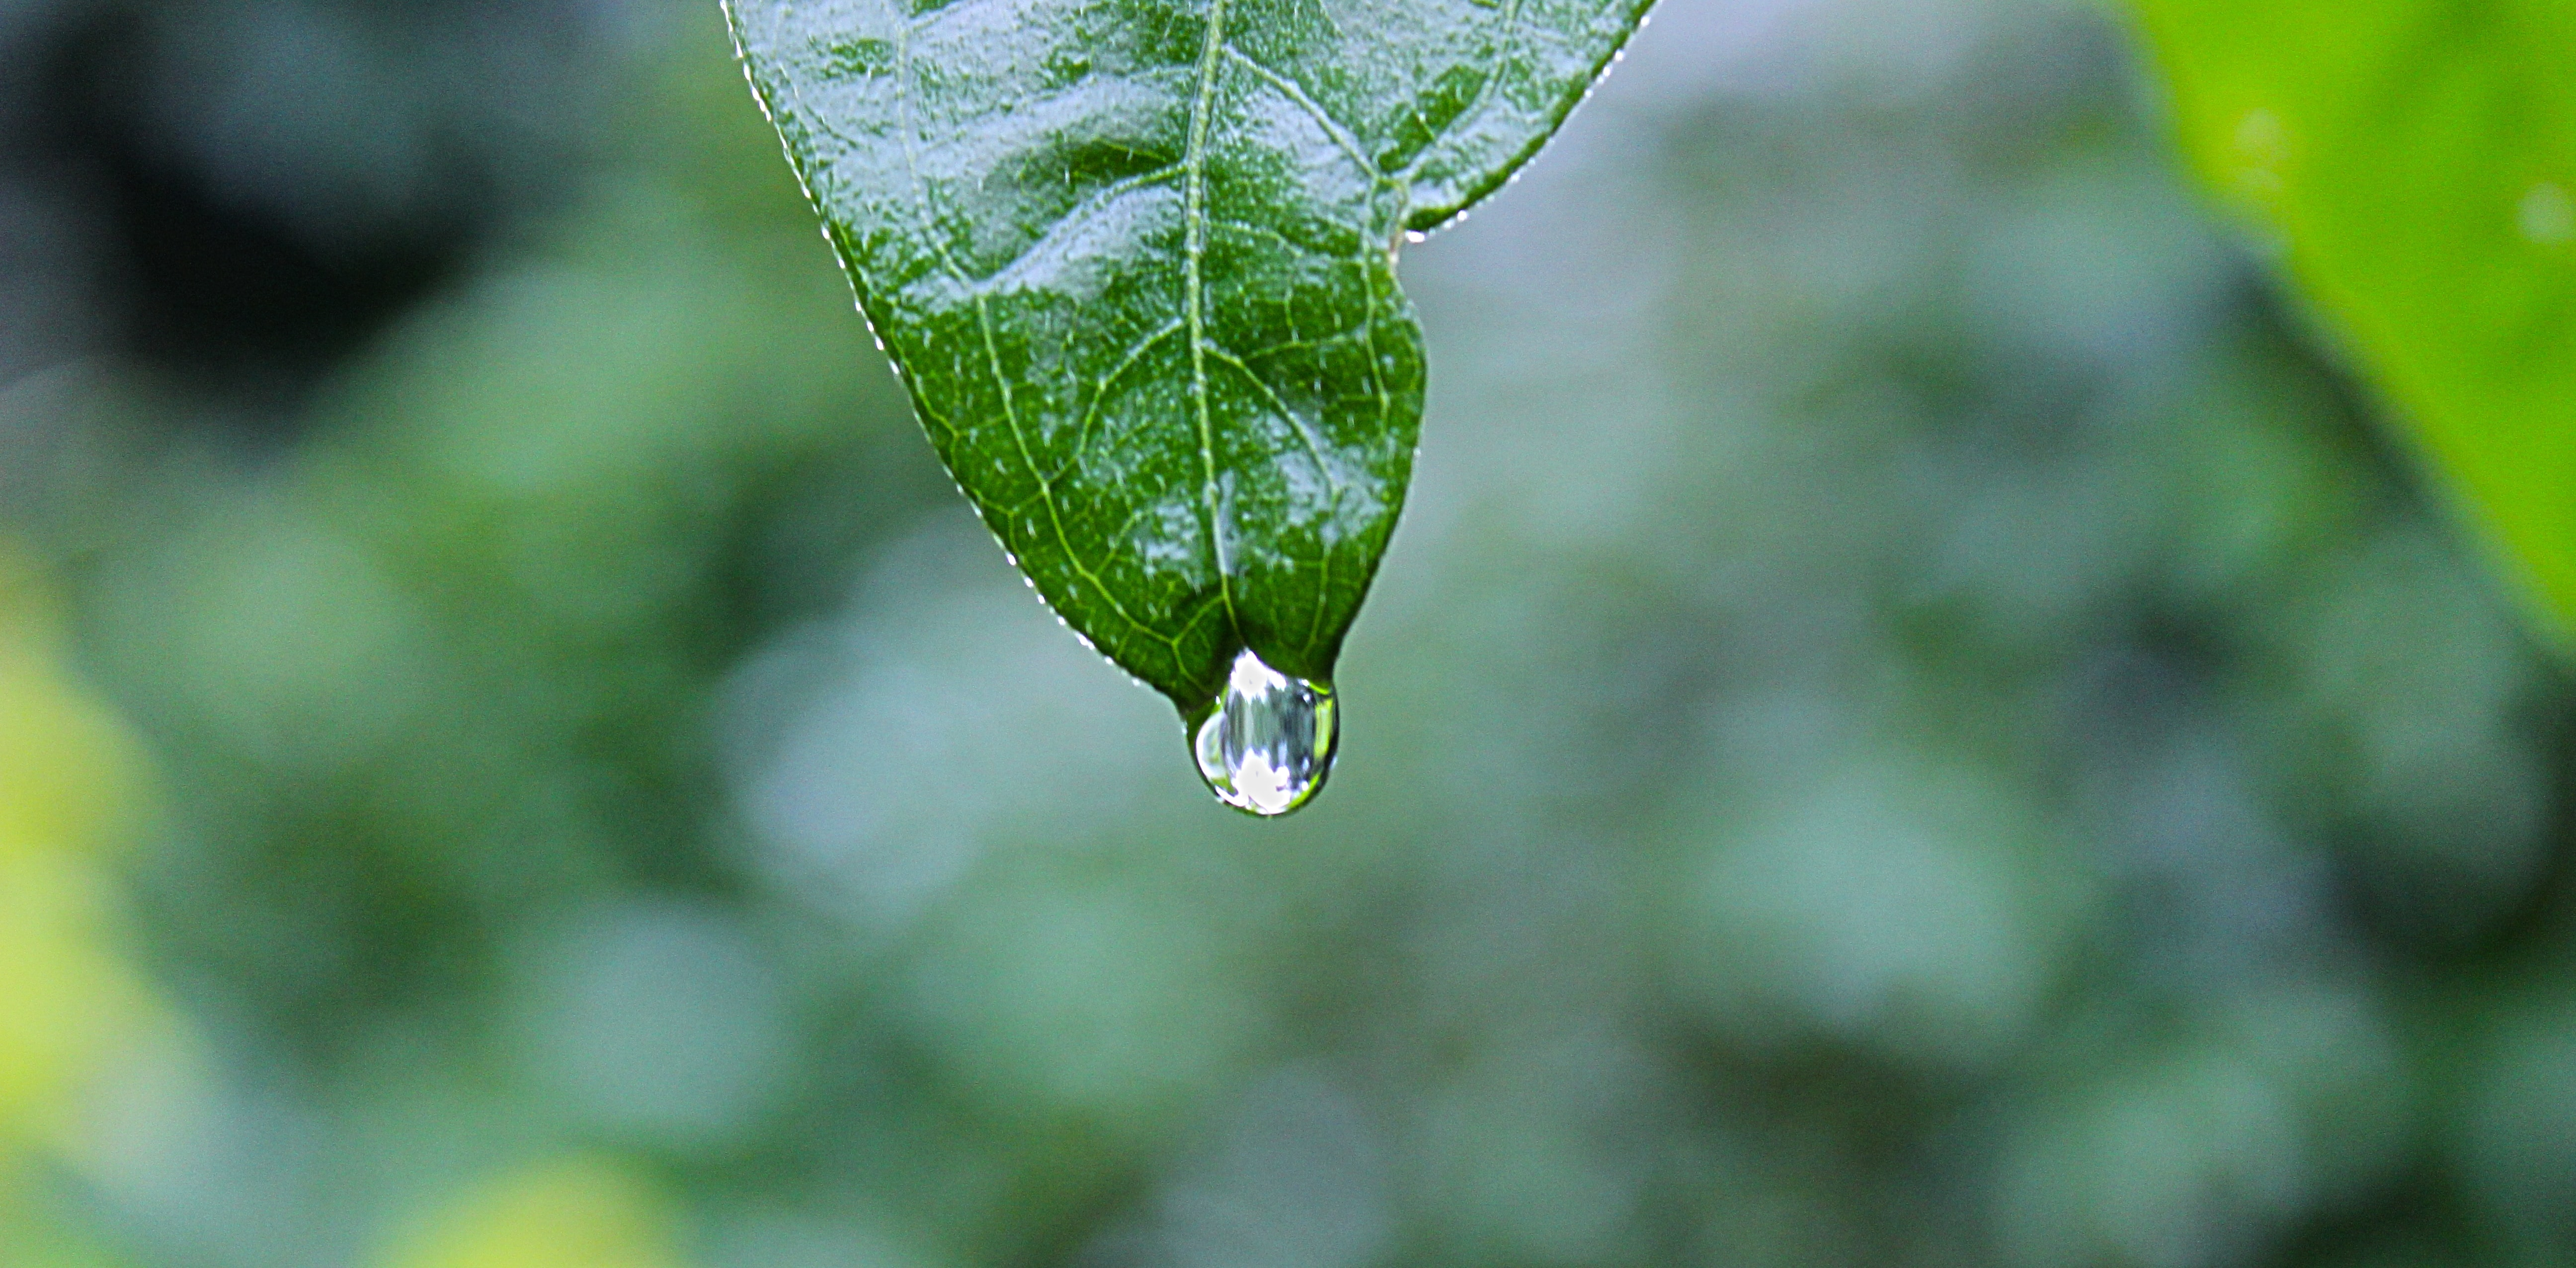 green leaf plant with water drops